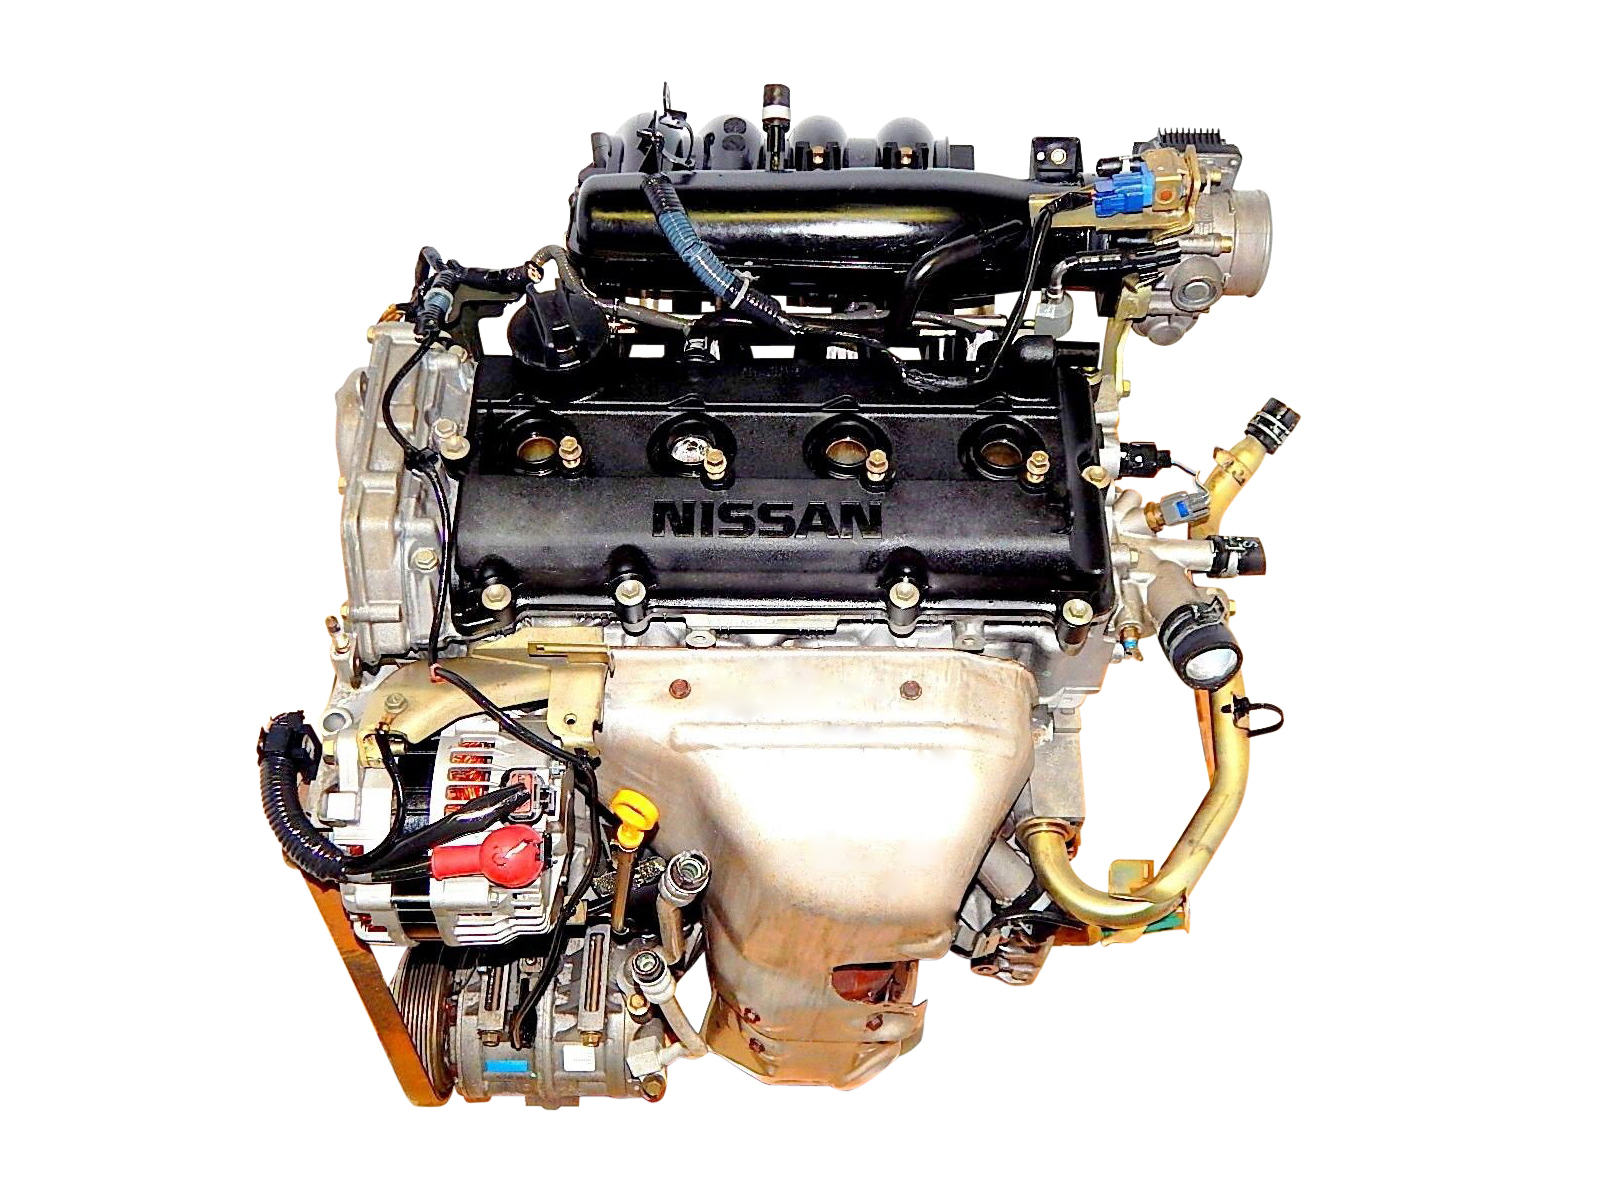 nissan altima jdm engines for sale nissan qr25 ka24